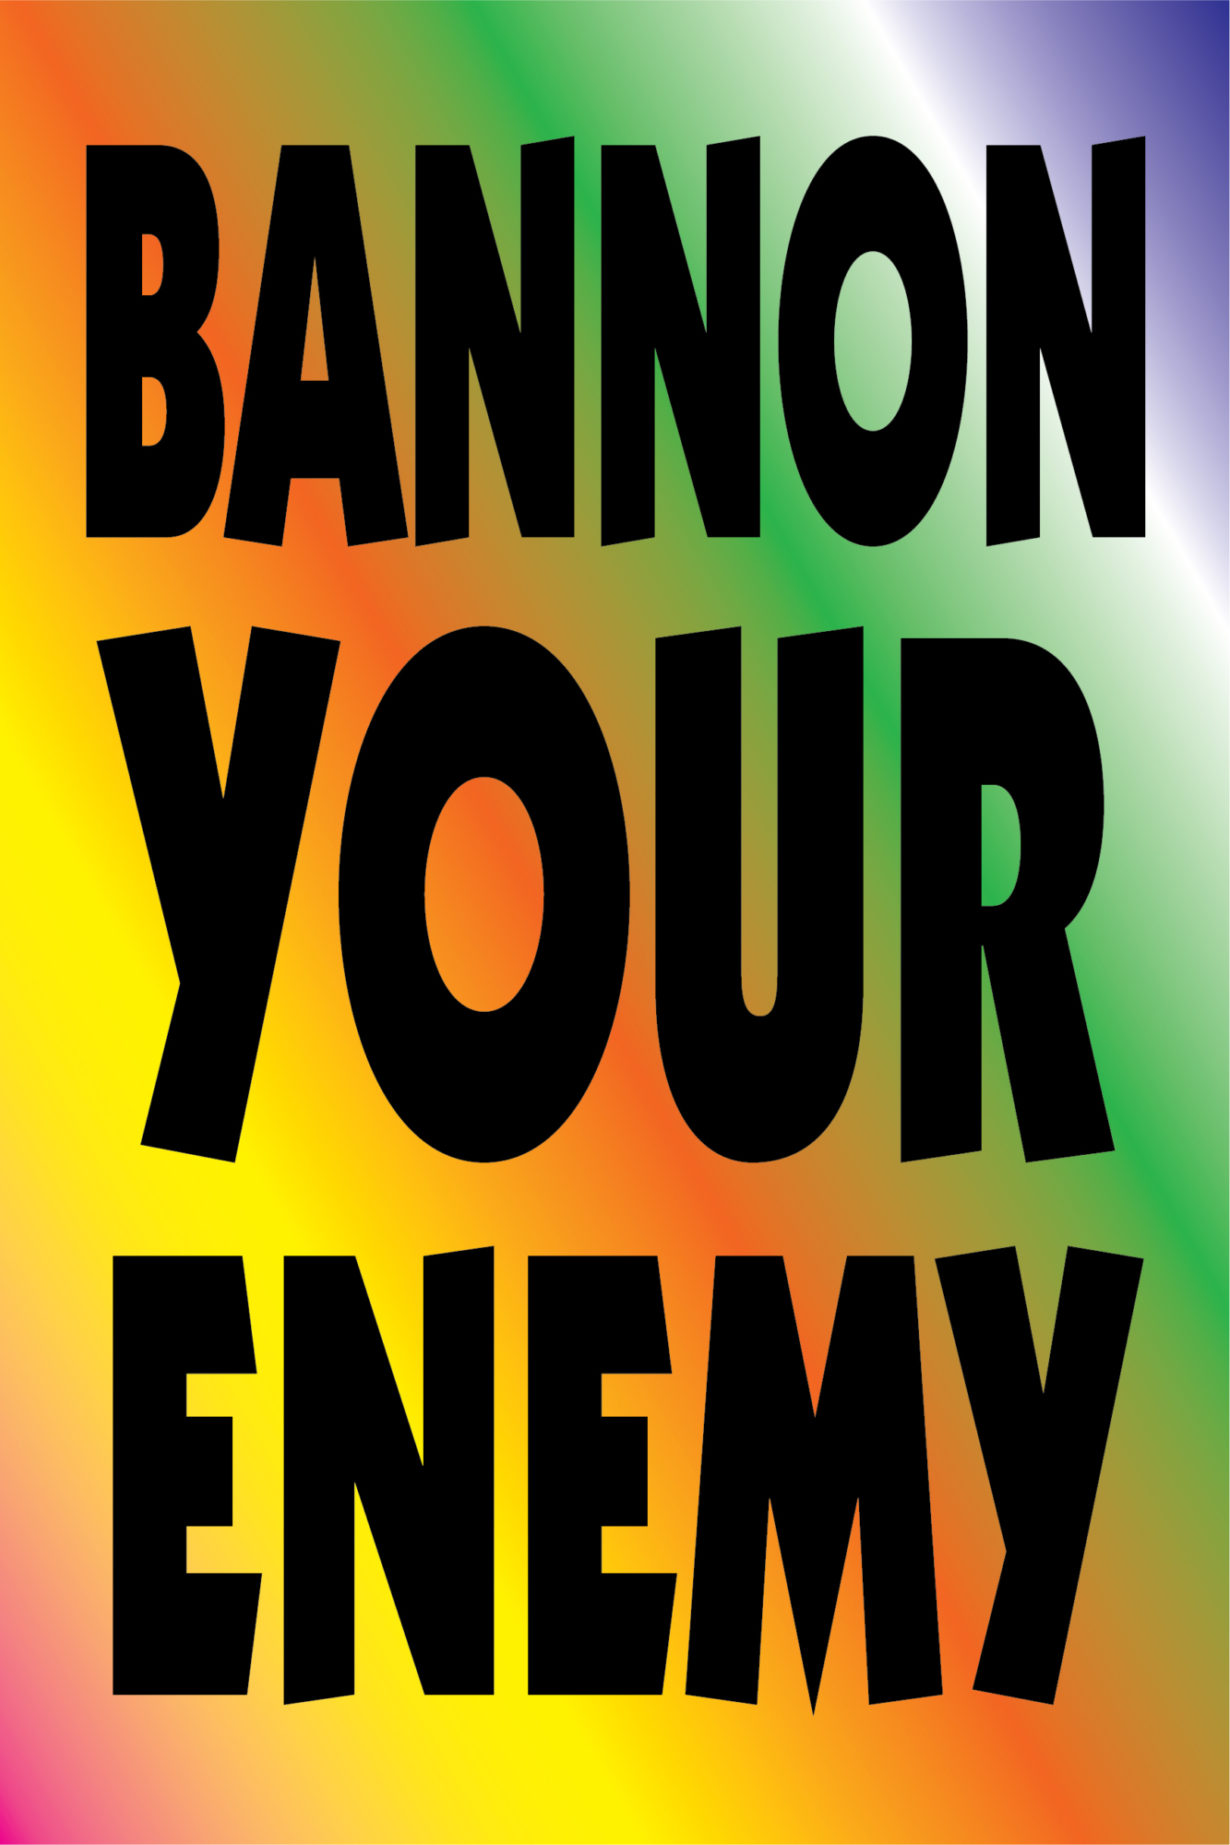 NP_51_75_2017_Bannon-Your-Enemy.jpg